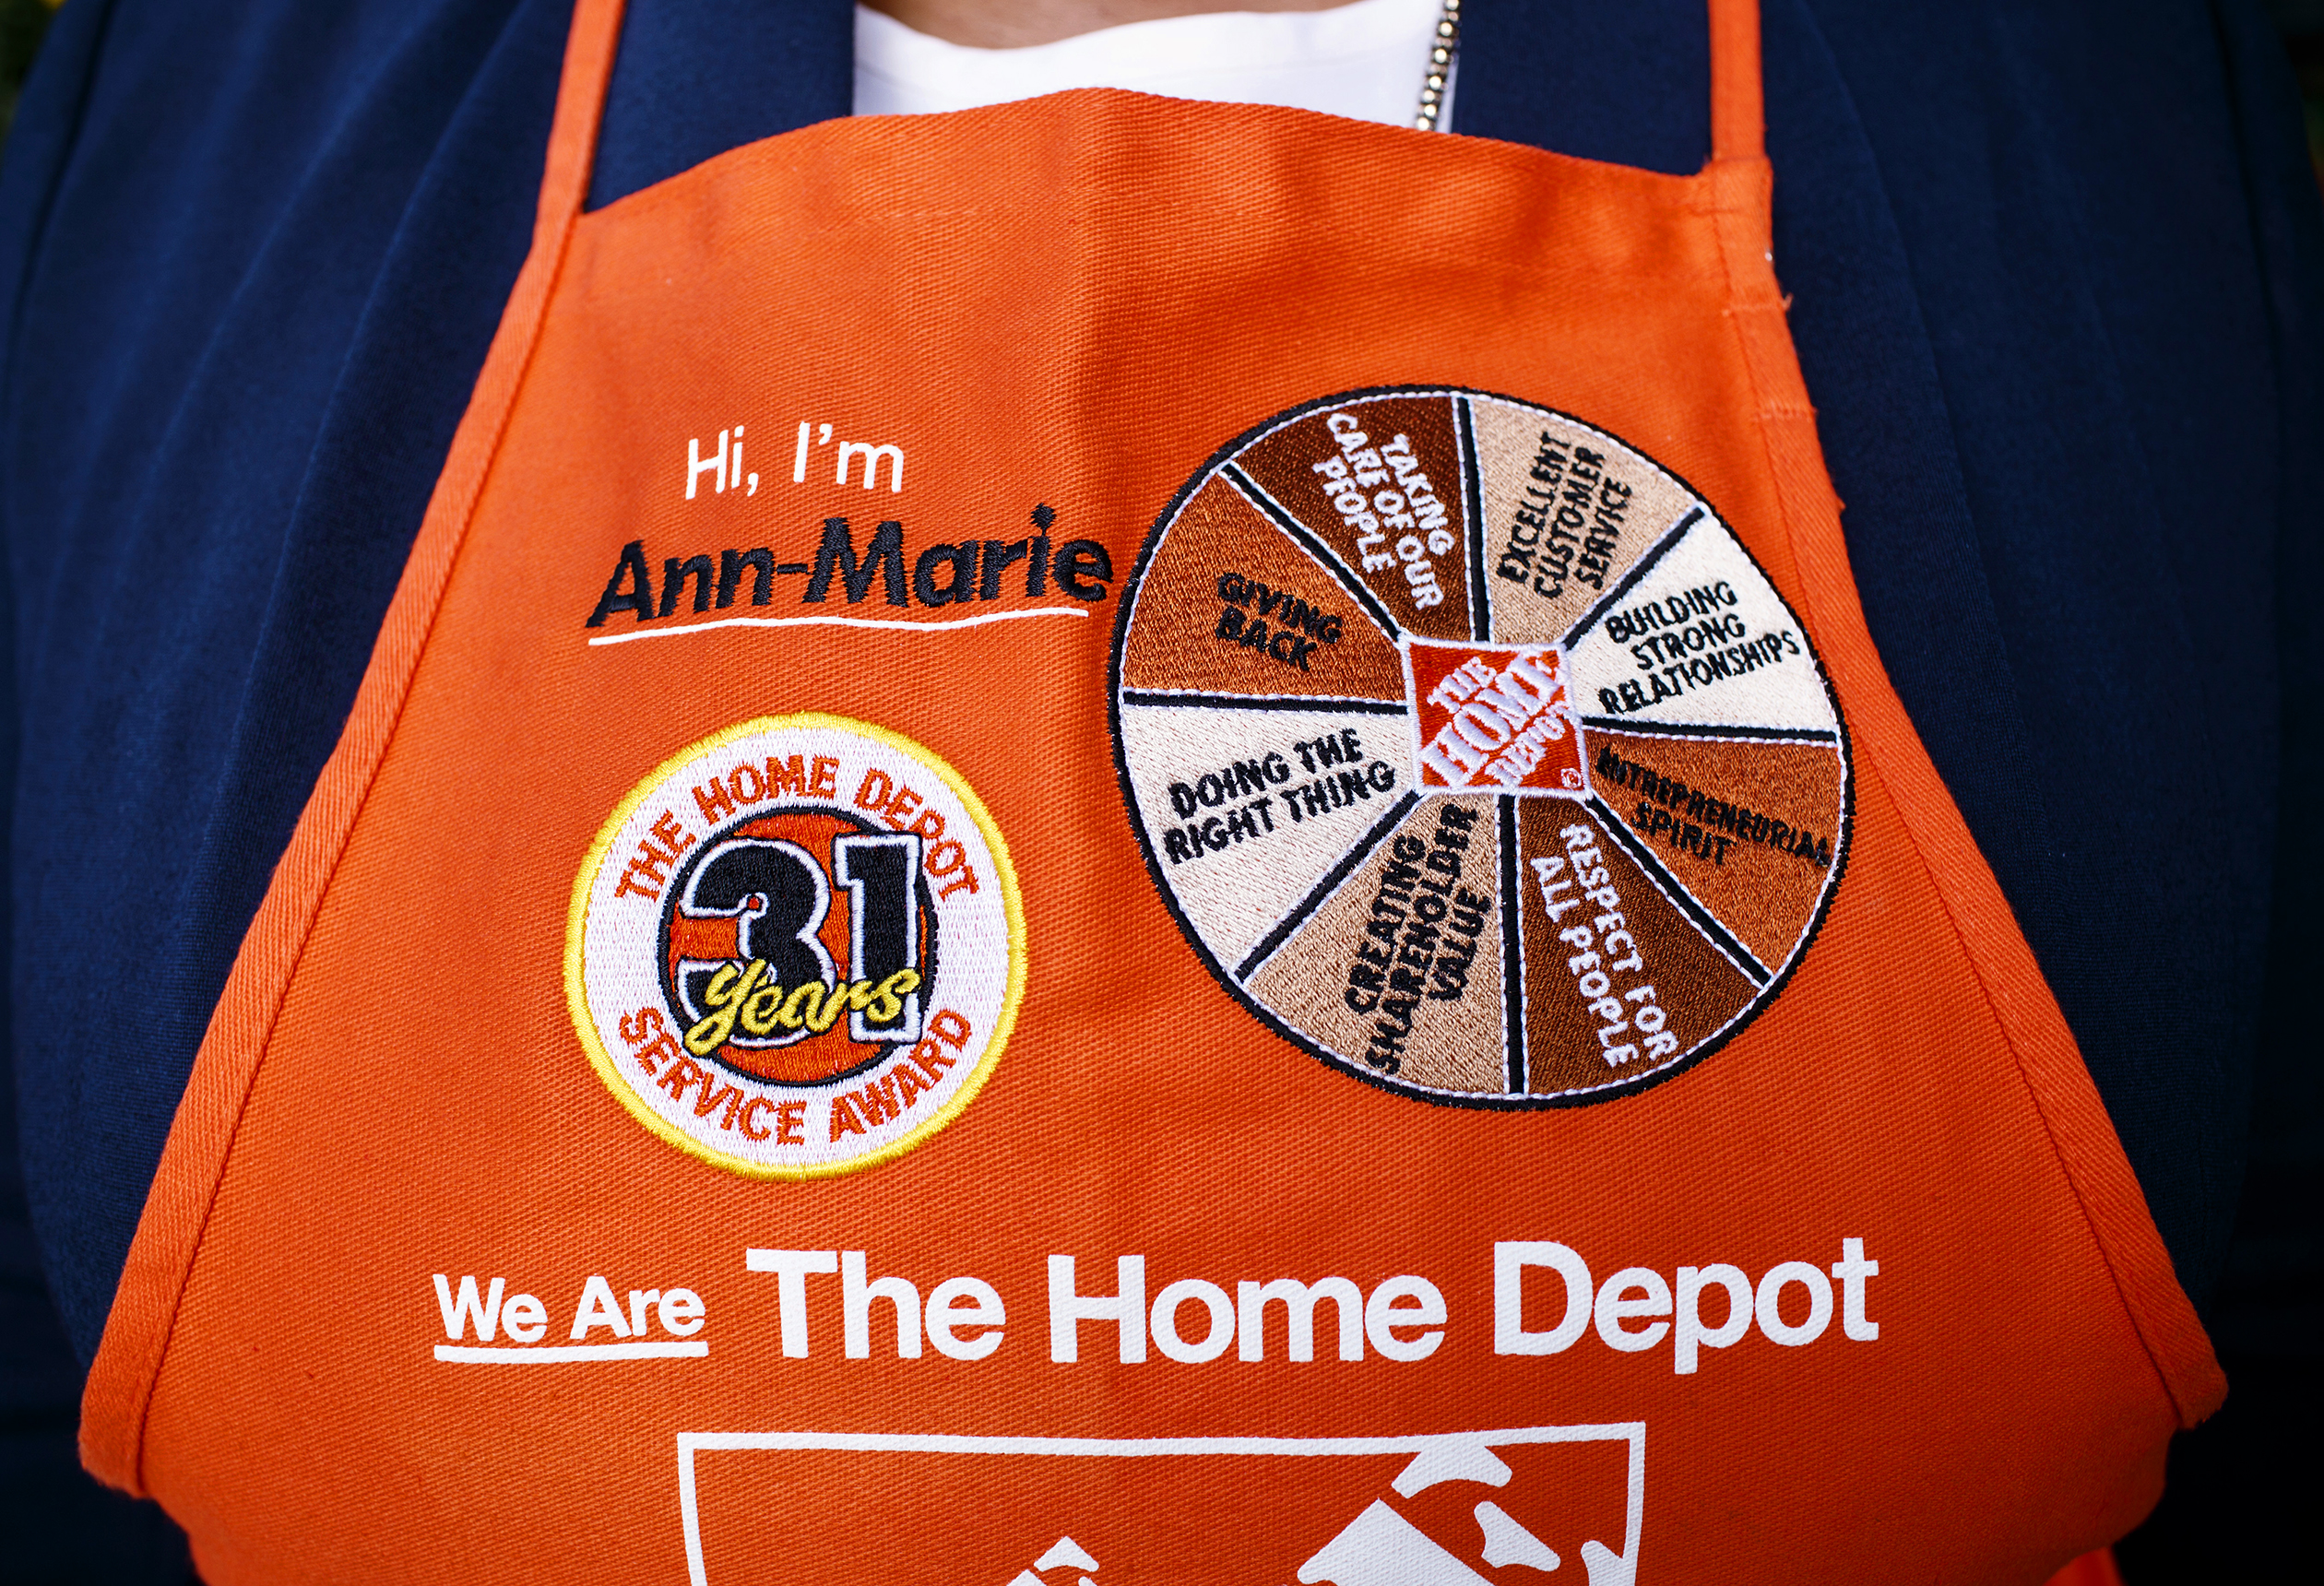 How Home Depot's Ann-Marie Campbell Rose From Cashier to the C-Suite Ladder Stand Home Depot Mobile on pontoon boat ladders, dock ladders, home step ladders, damaged ladders, home library ladders, ikea ladders, snakes and ladders, home platform ladders, types of ladders, fastenal ladders, costco ladders, extension ladders, small boat ladders, attic ladders, cosco ladders, 22 ft little giant ladders, word ladders, apple ladders, women on ladders, folding boat ladders,